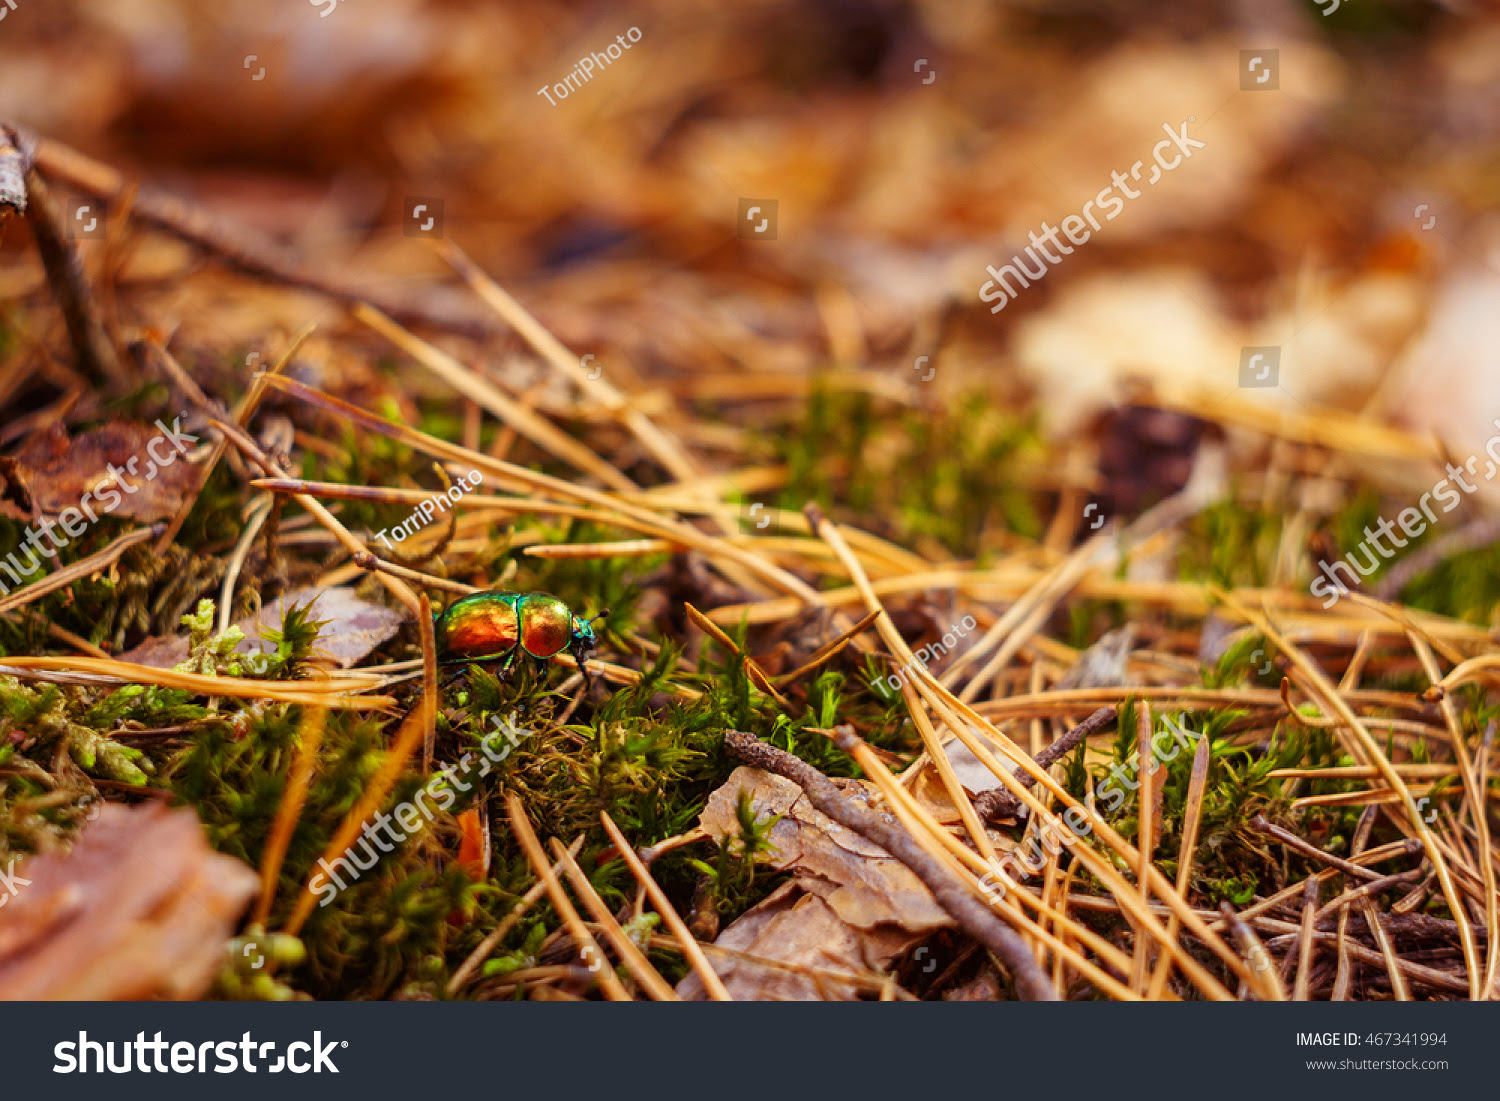 Autumn forest nature background with green dung beetle, moss and needles